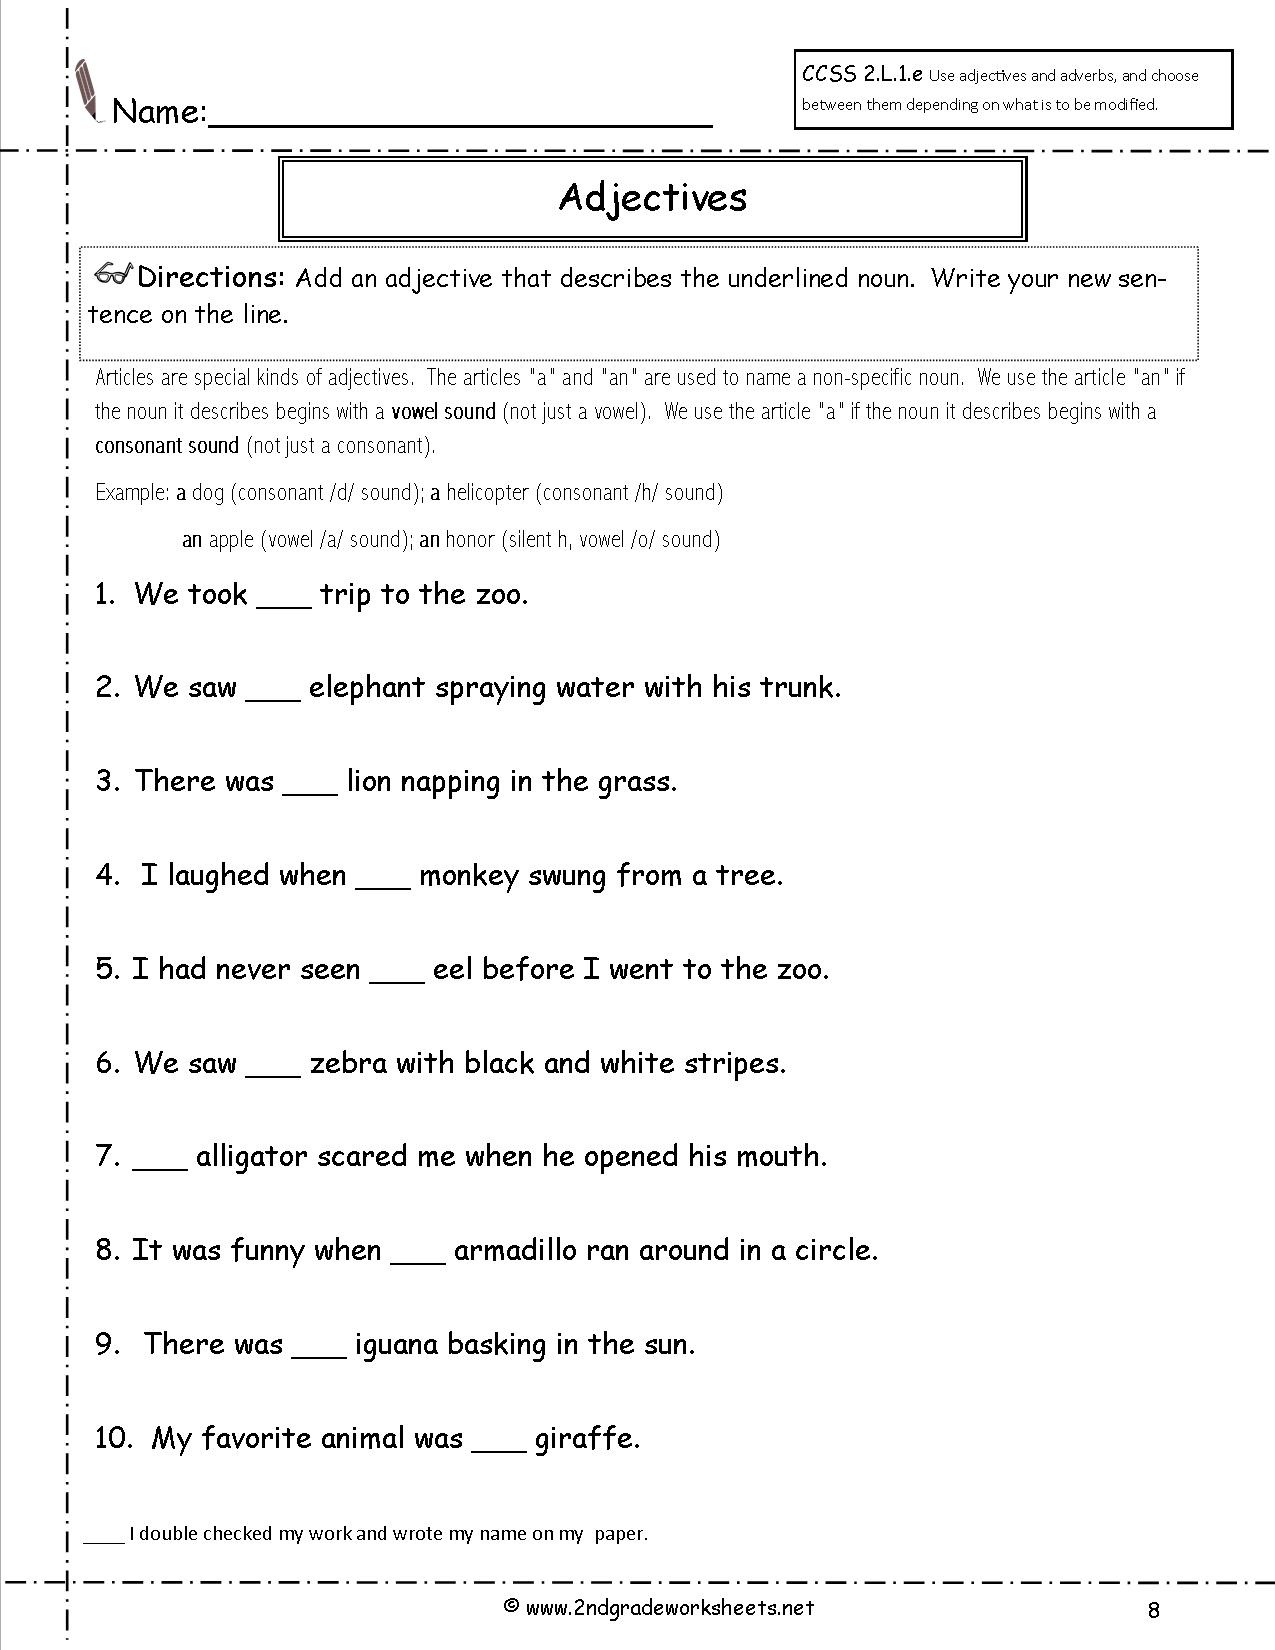 hight resolution of Magnet Worksheets For 2nd Grade   Printable Worksheets and Activities for  Teachers